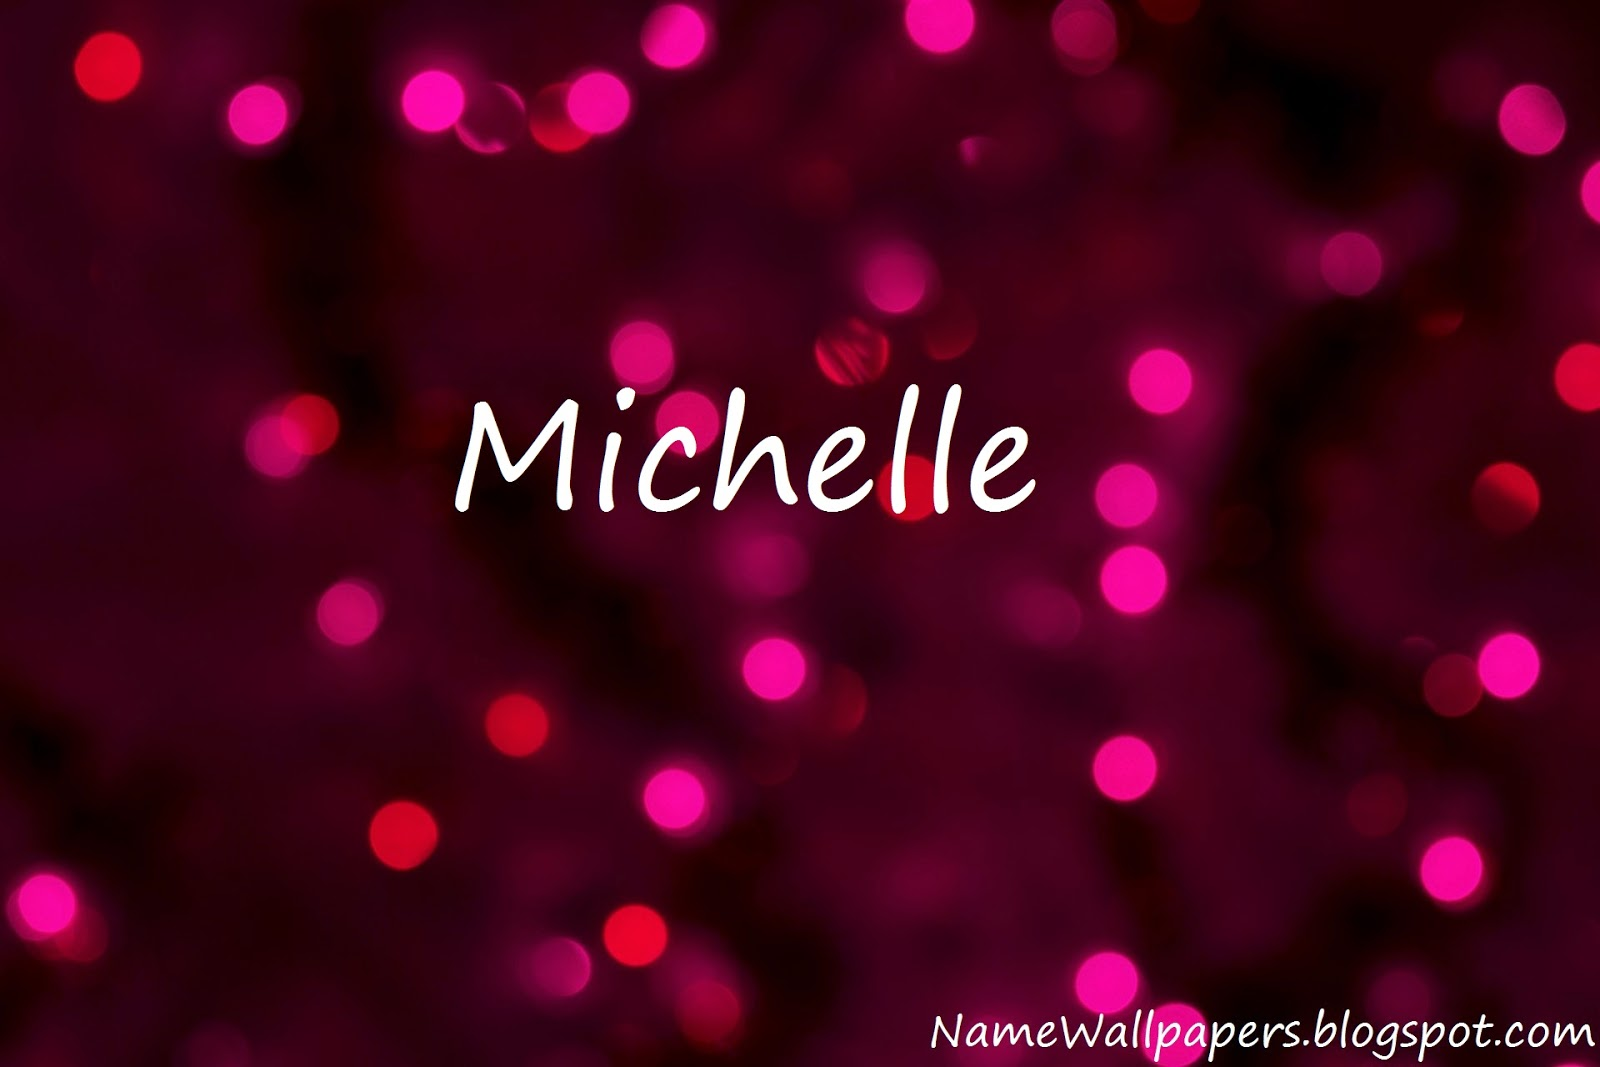 Anime Cell Phone Wallpaper Download Michelle Name Wallpaper Gallery